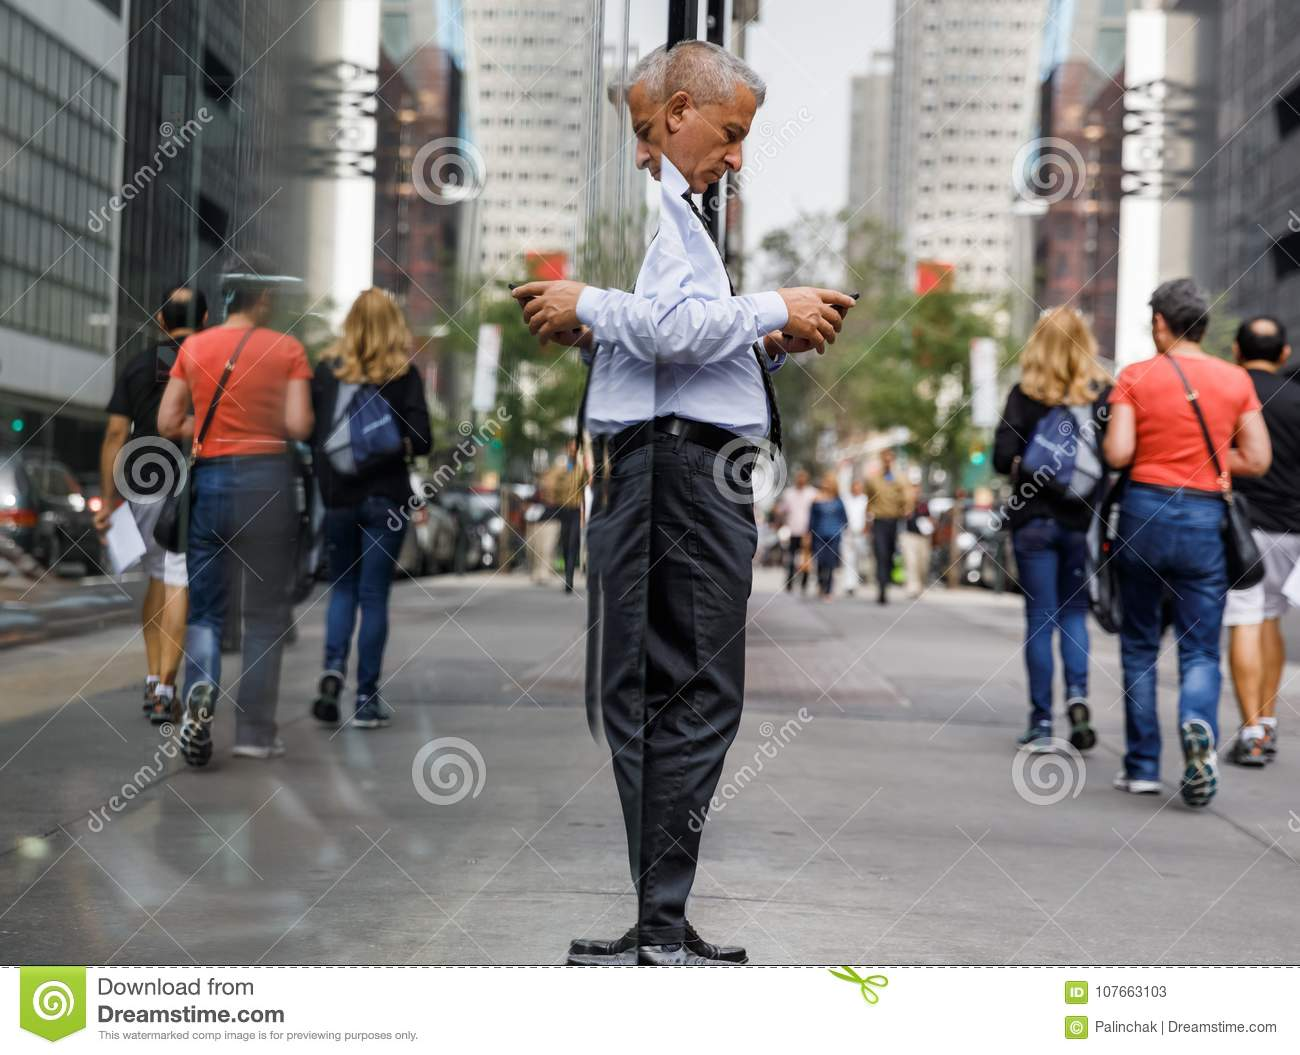 Elderly gray-haired man with a mobile phone in NYC